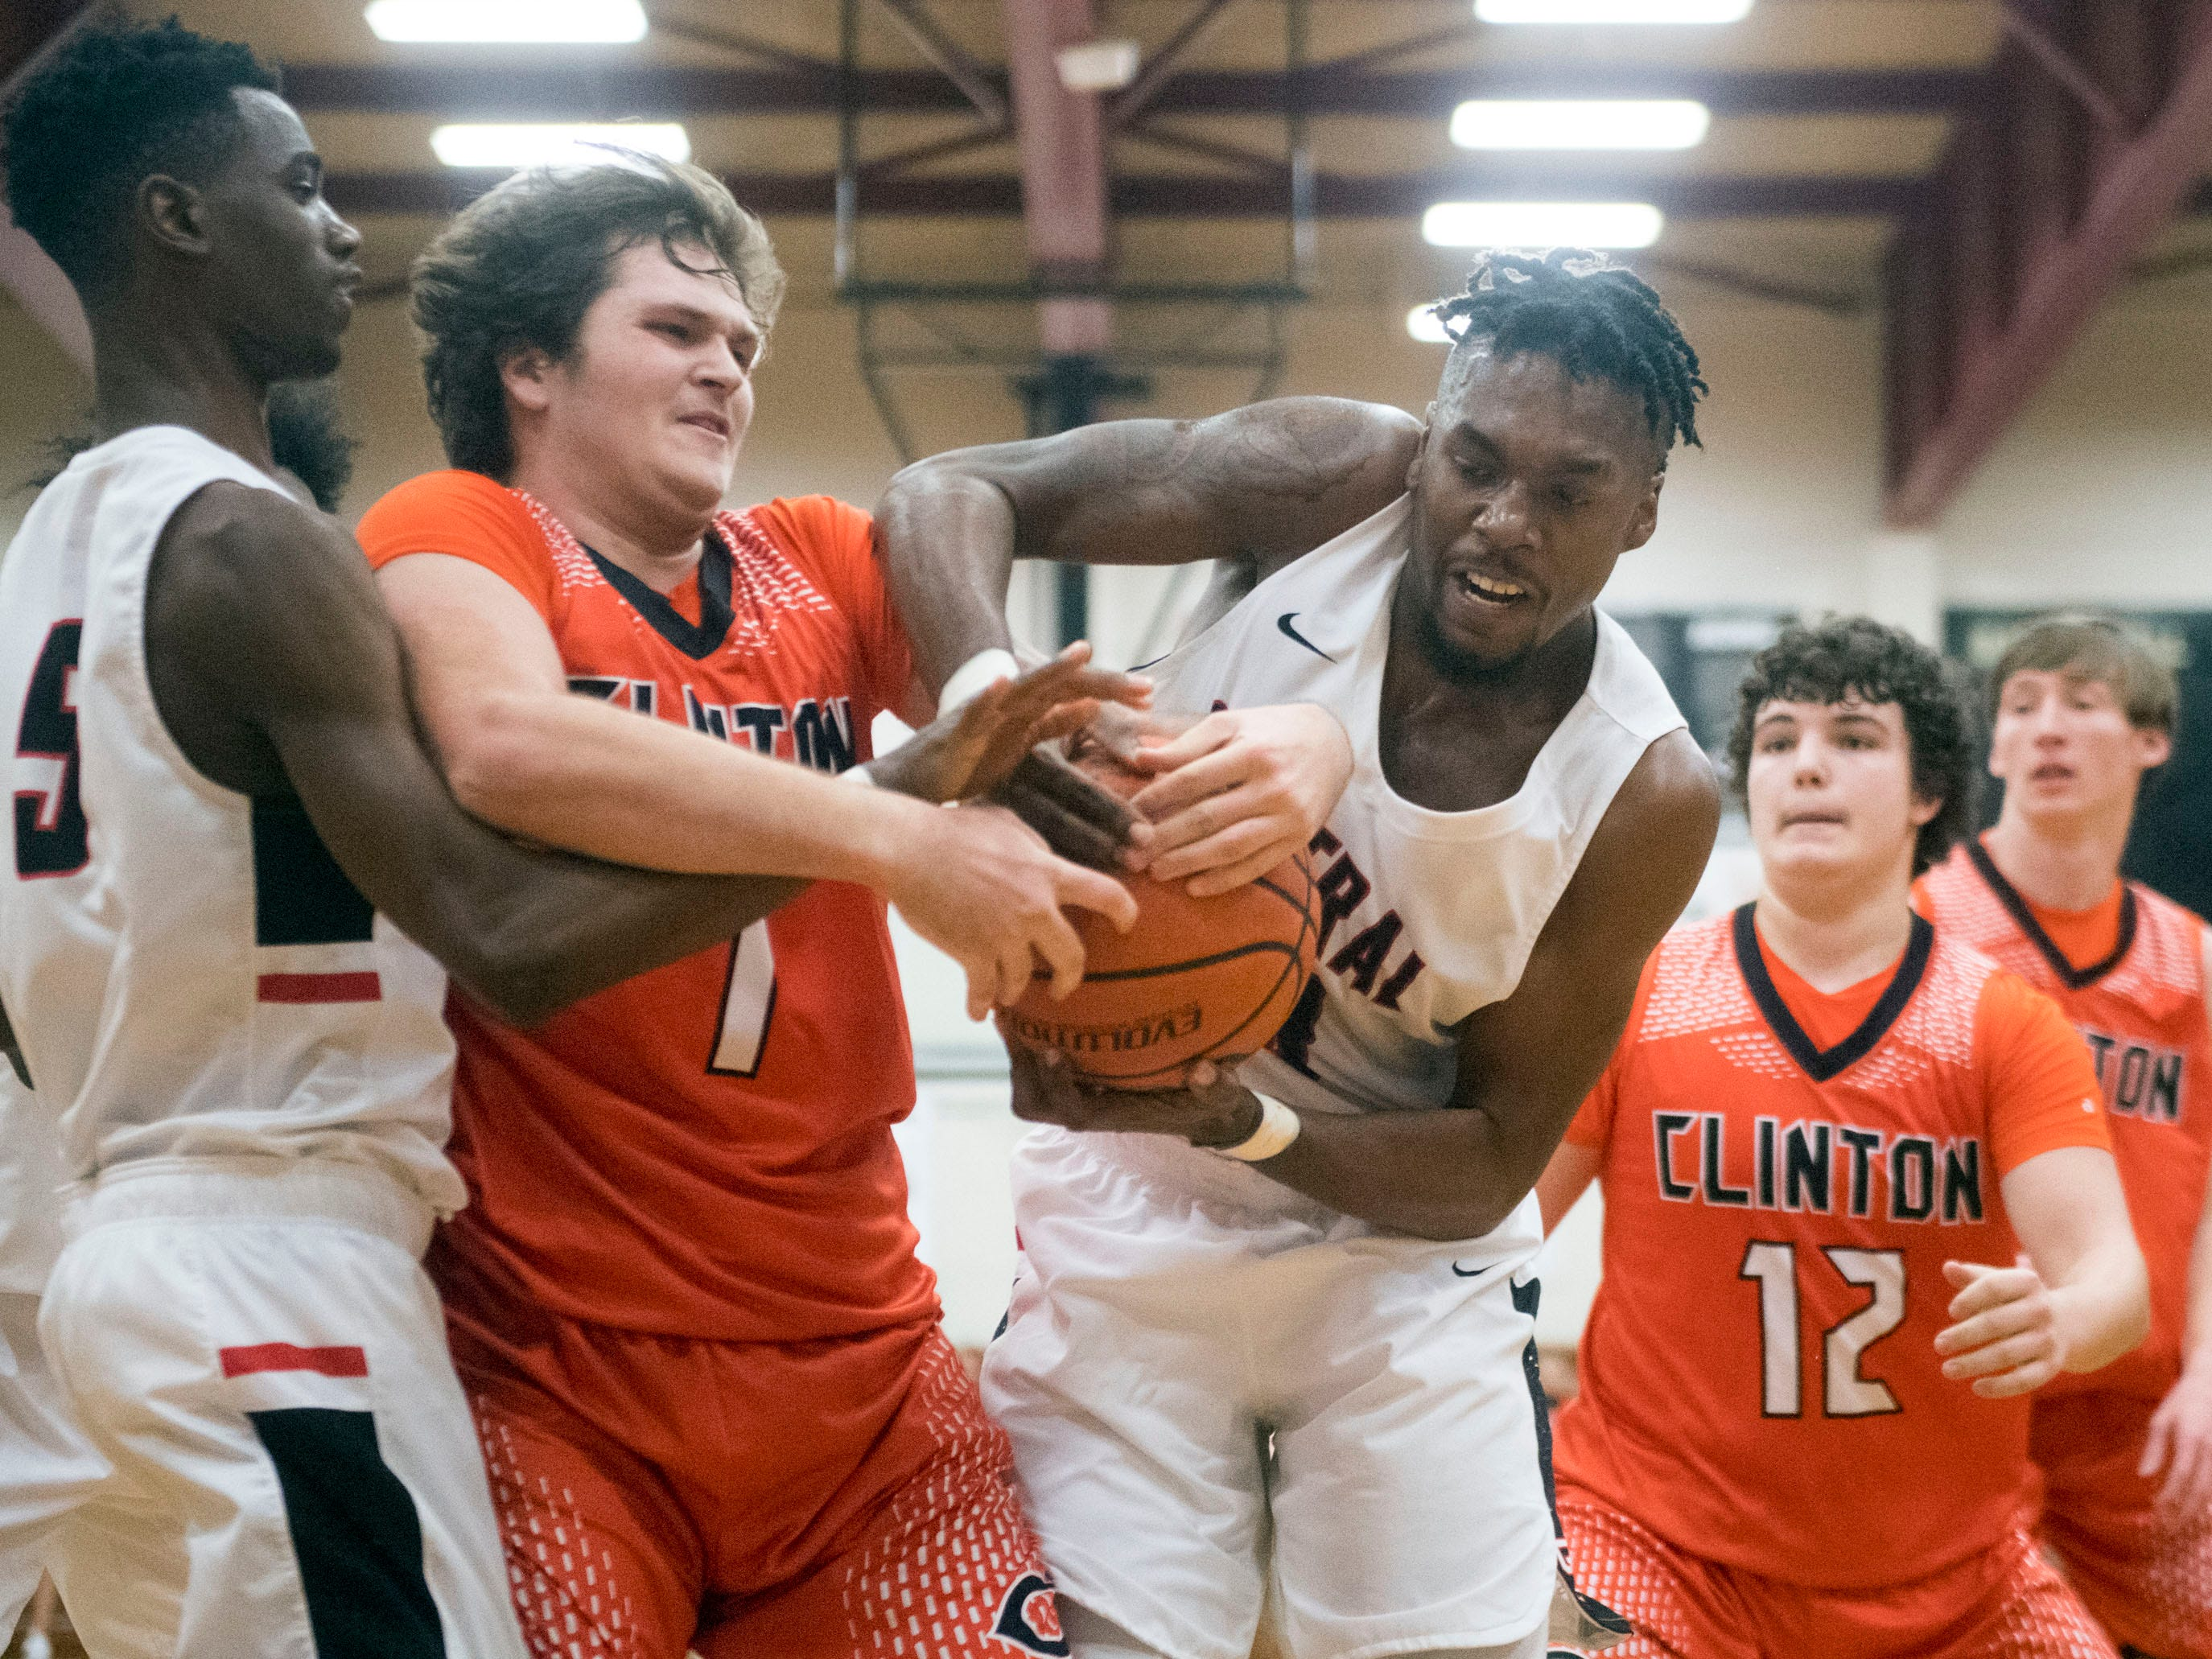 Clinton's Andrew Shoopman (1) loses the ball between Central's Irakoze Frank (5) and Sean Oglesby (23) on Tuesday, December 11, 2018.